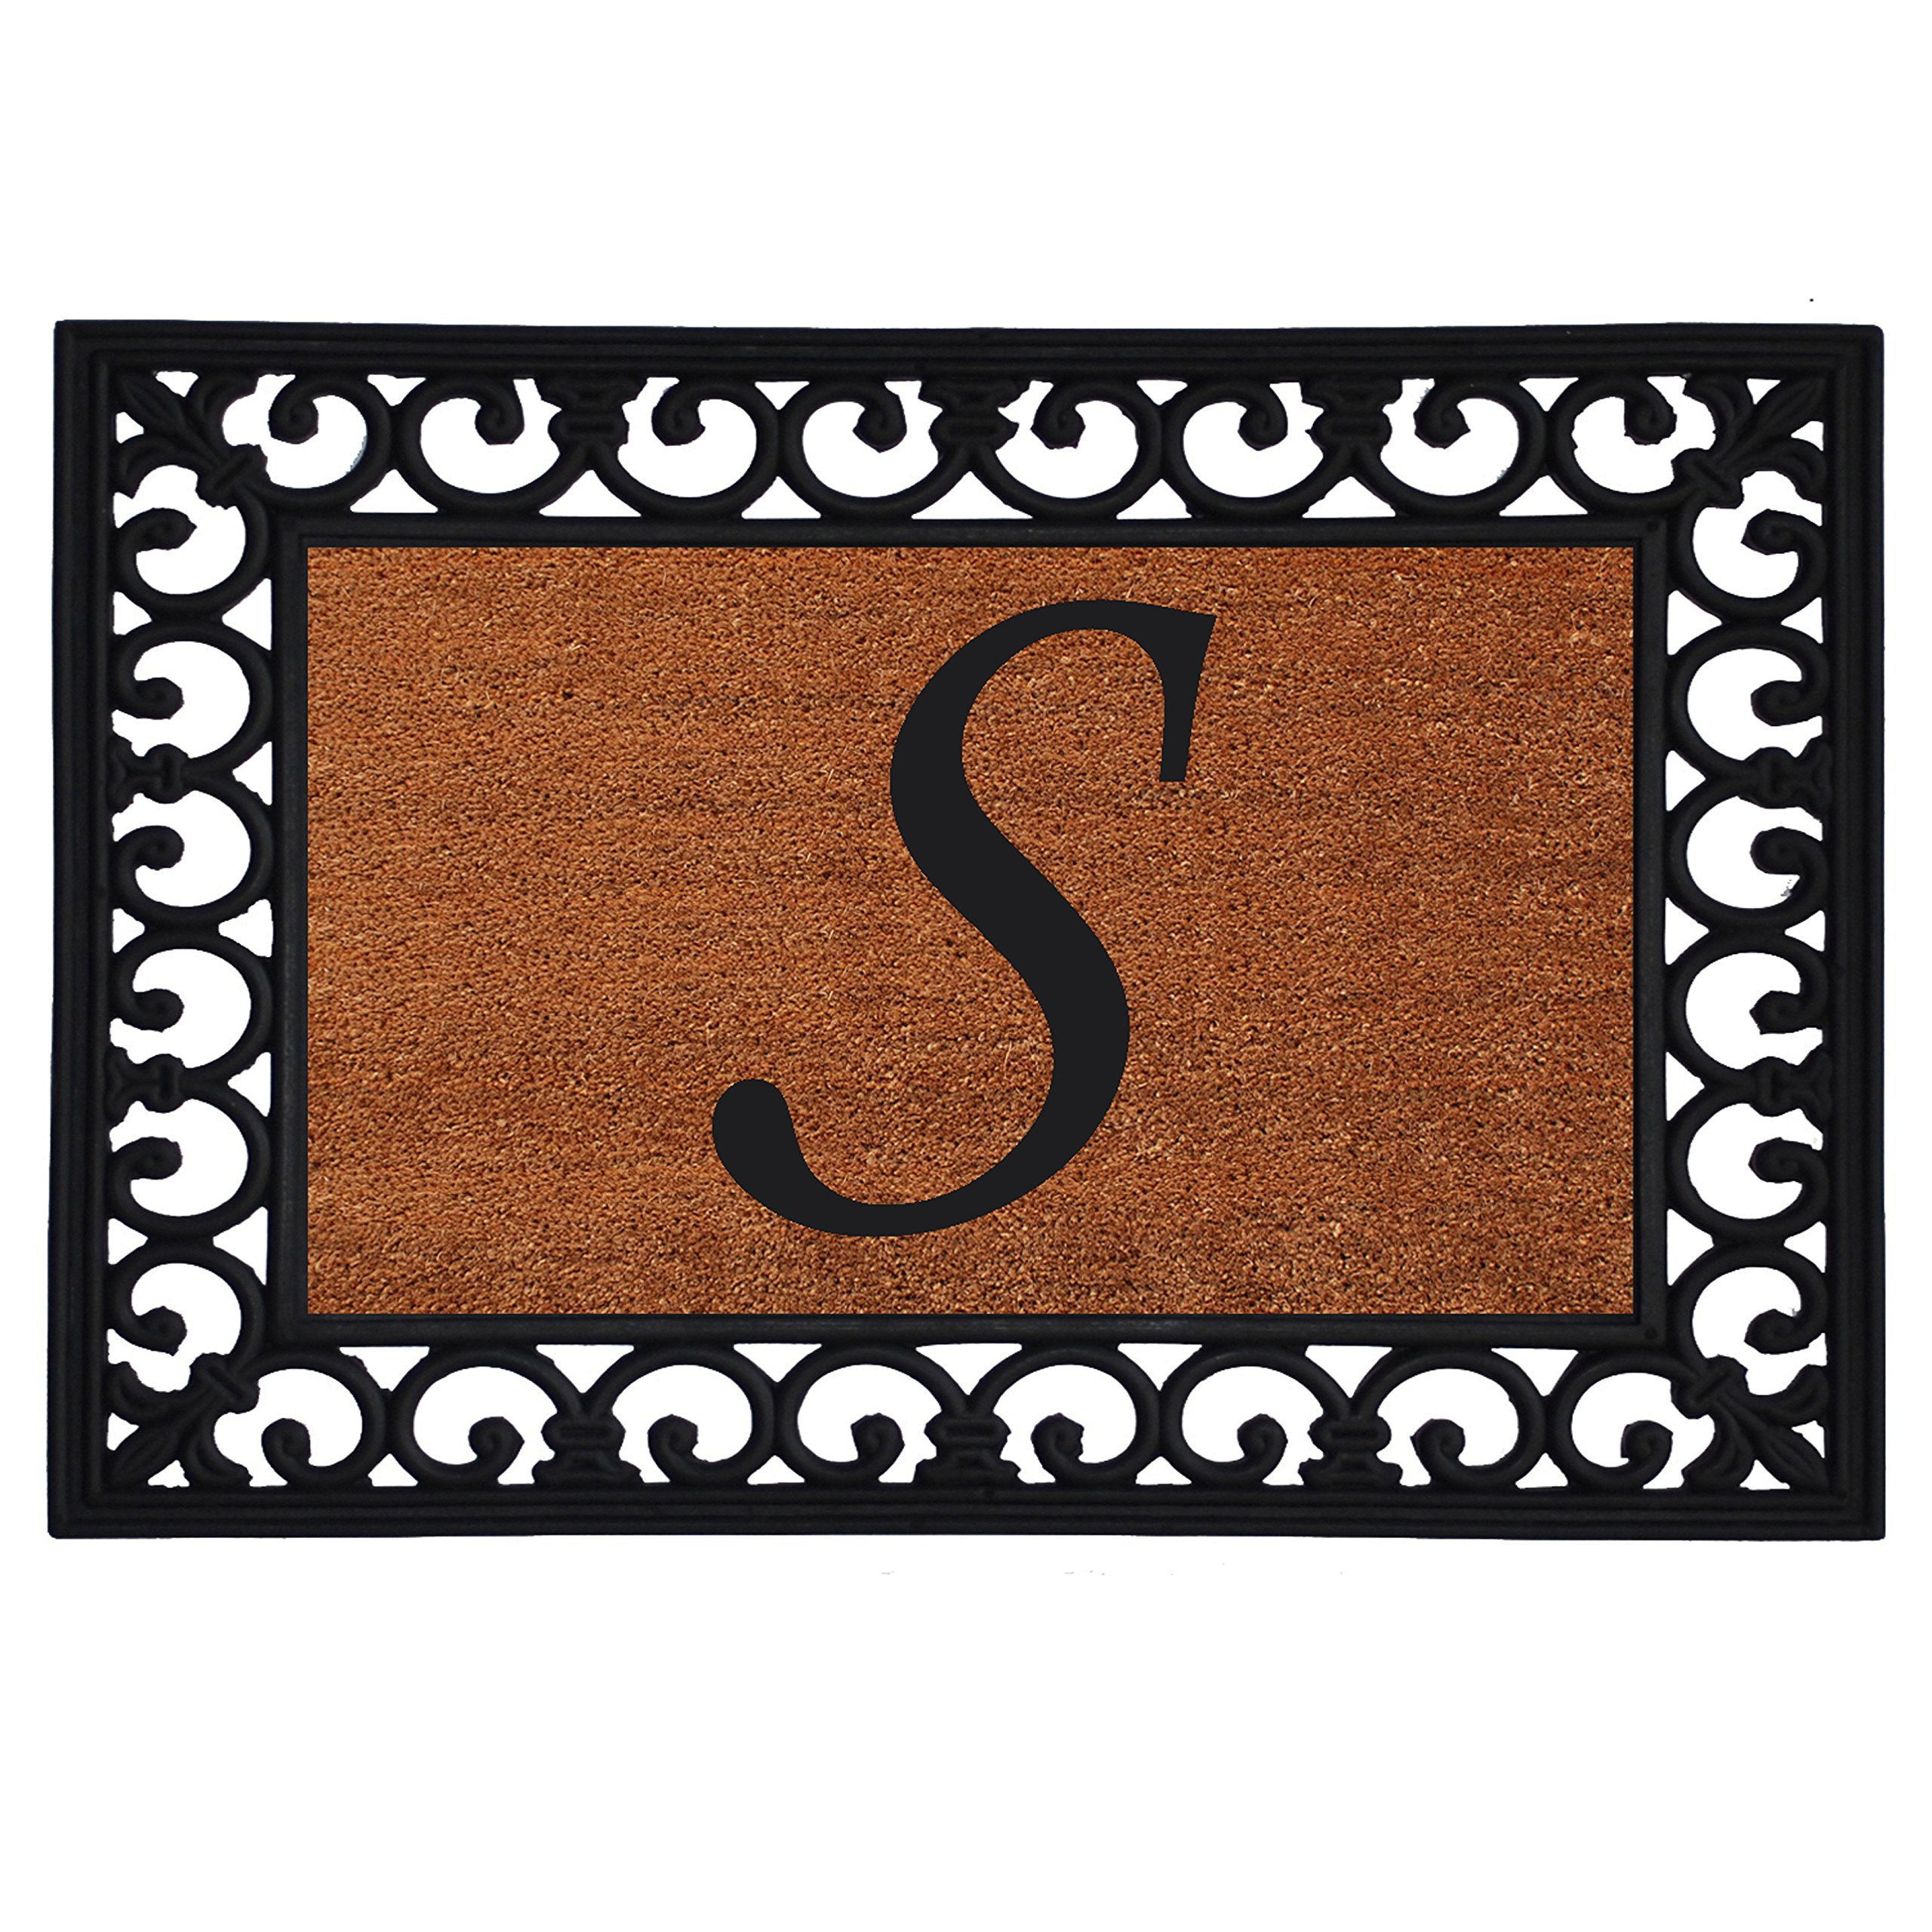 Home & More 180041925S Inserted Doormat, 19'' X 25'' x 0.60'', Monogrammed Letter S, Natural/Black